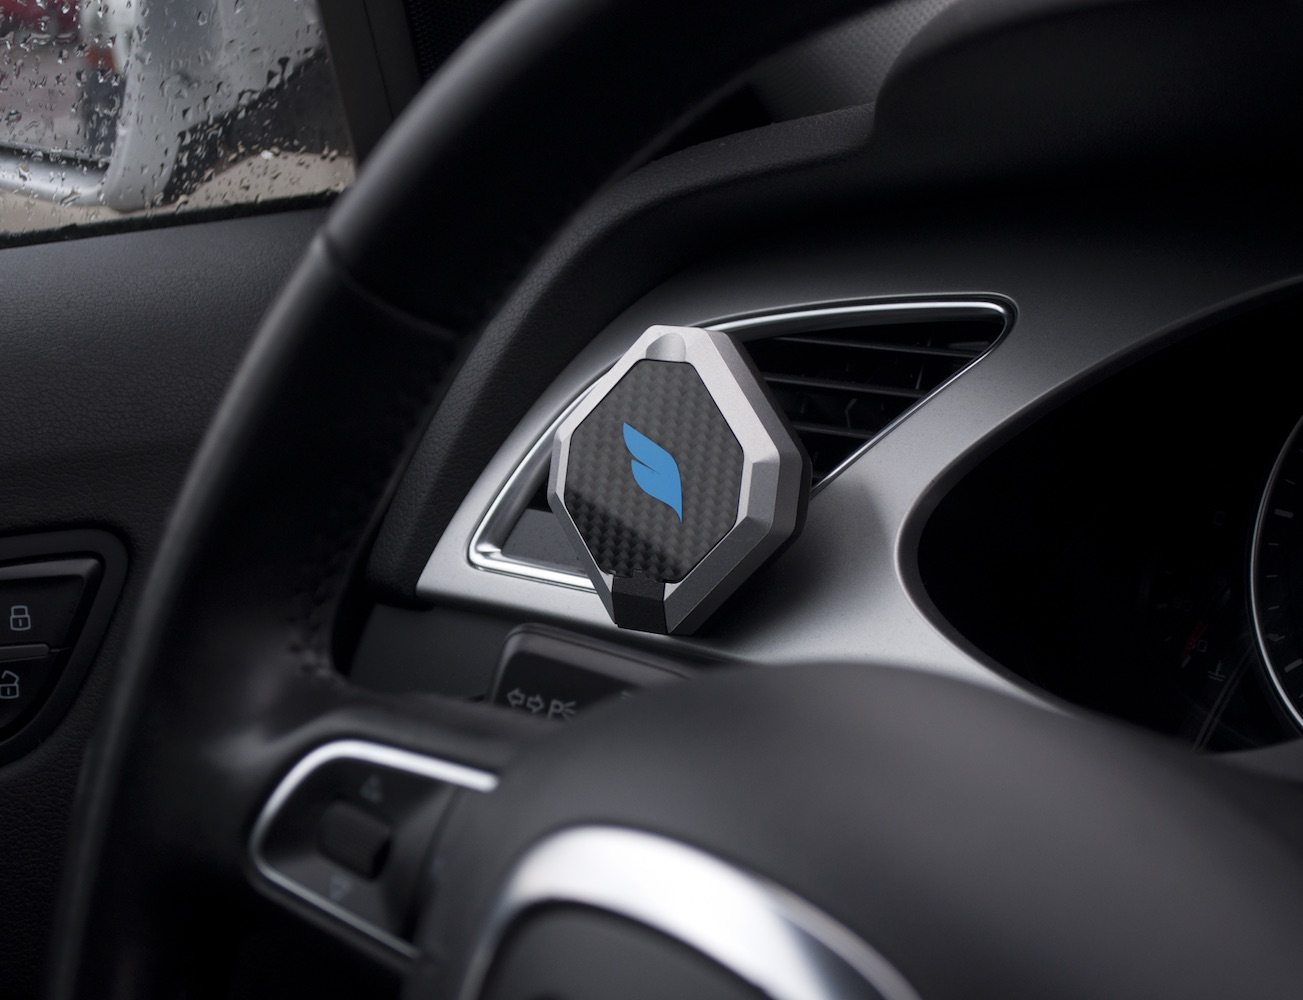 Bluejay+%26%238211%3B+The+World%26%238217%3Bs+First+Smart+Mount+For+Your+Car